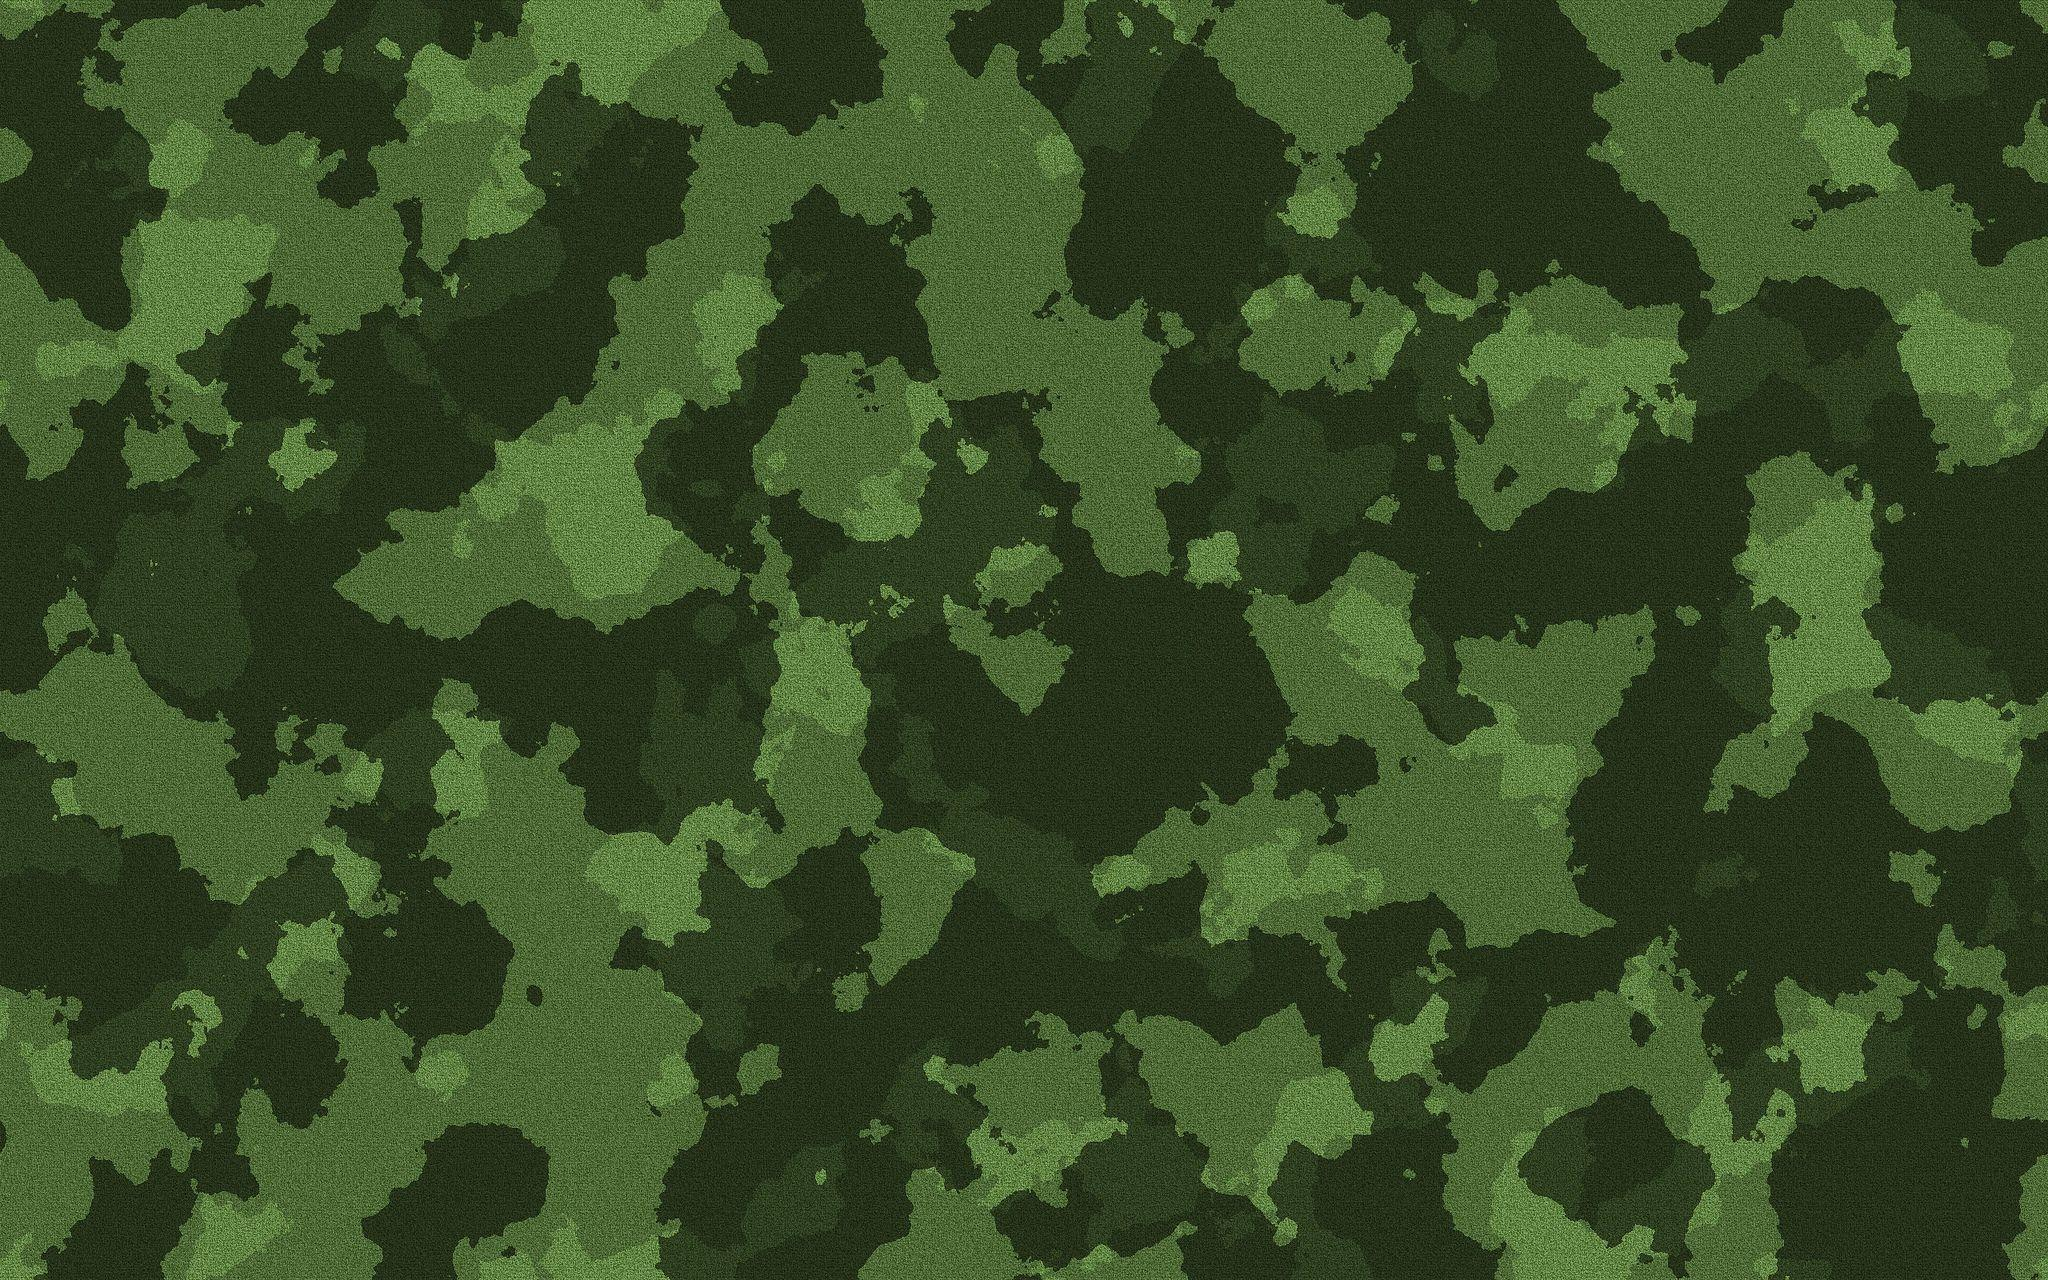 background camouflage army green camo wallpapers hd texture phone cell phones backgrounds file iphone 1080p awesome desktop wallpaperplay wallpapertag stunning